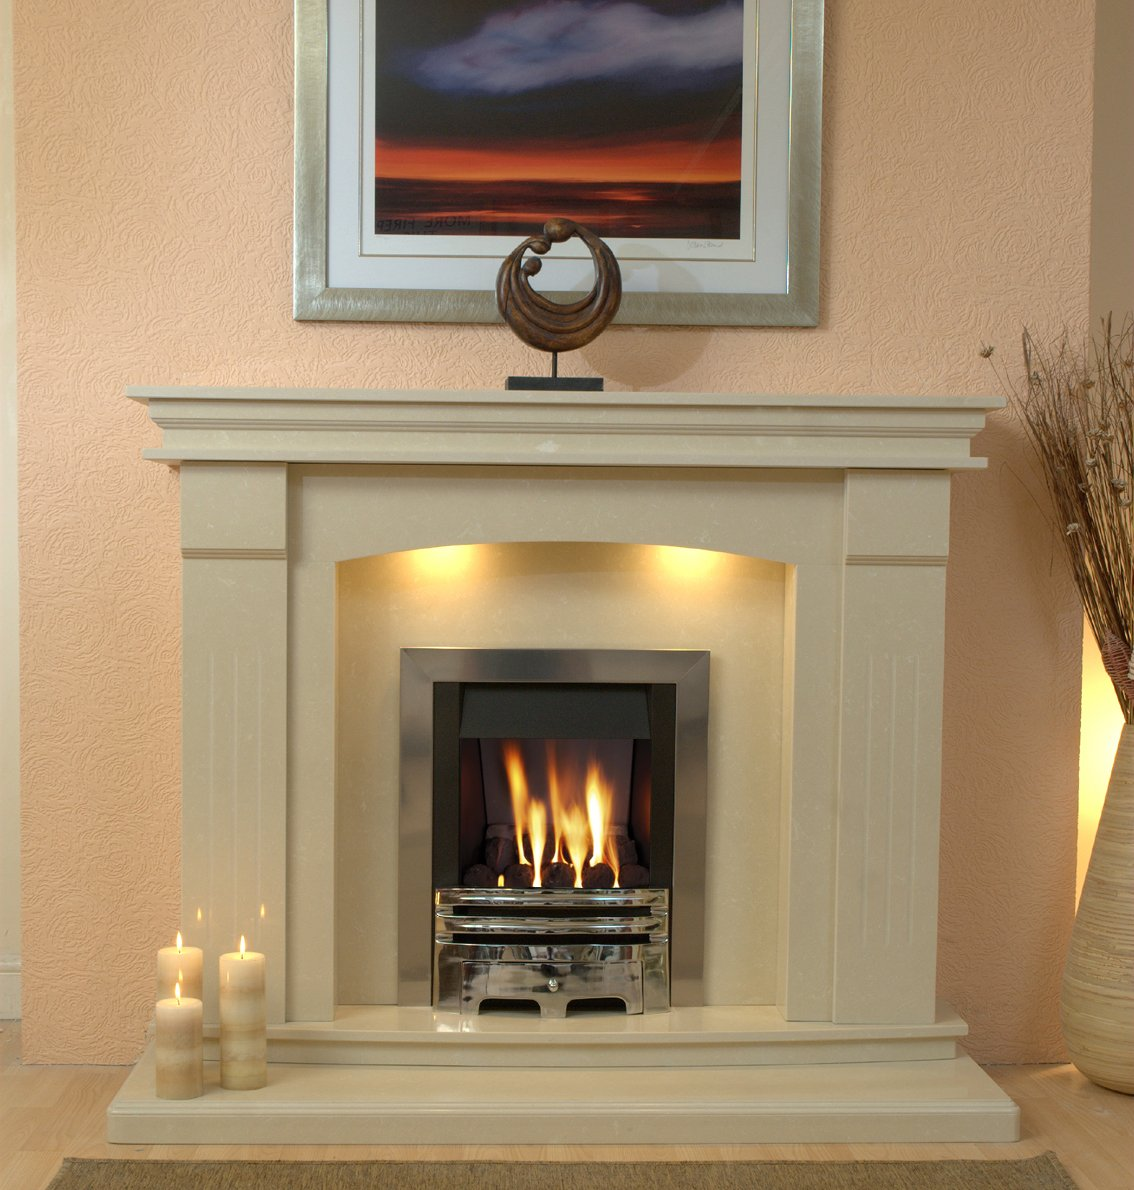 Marble Fireplace Sheridan Surround With Double Hearth Grand Design Bespokemarblefireplaces